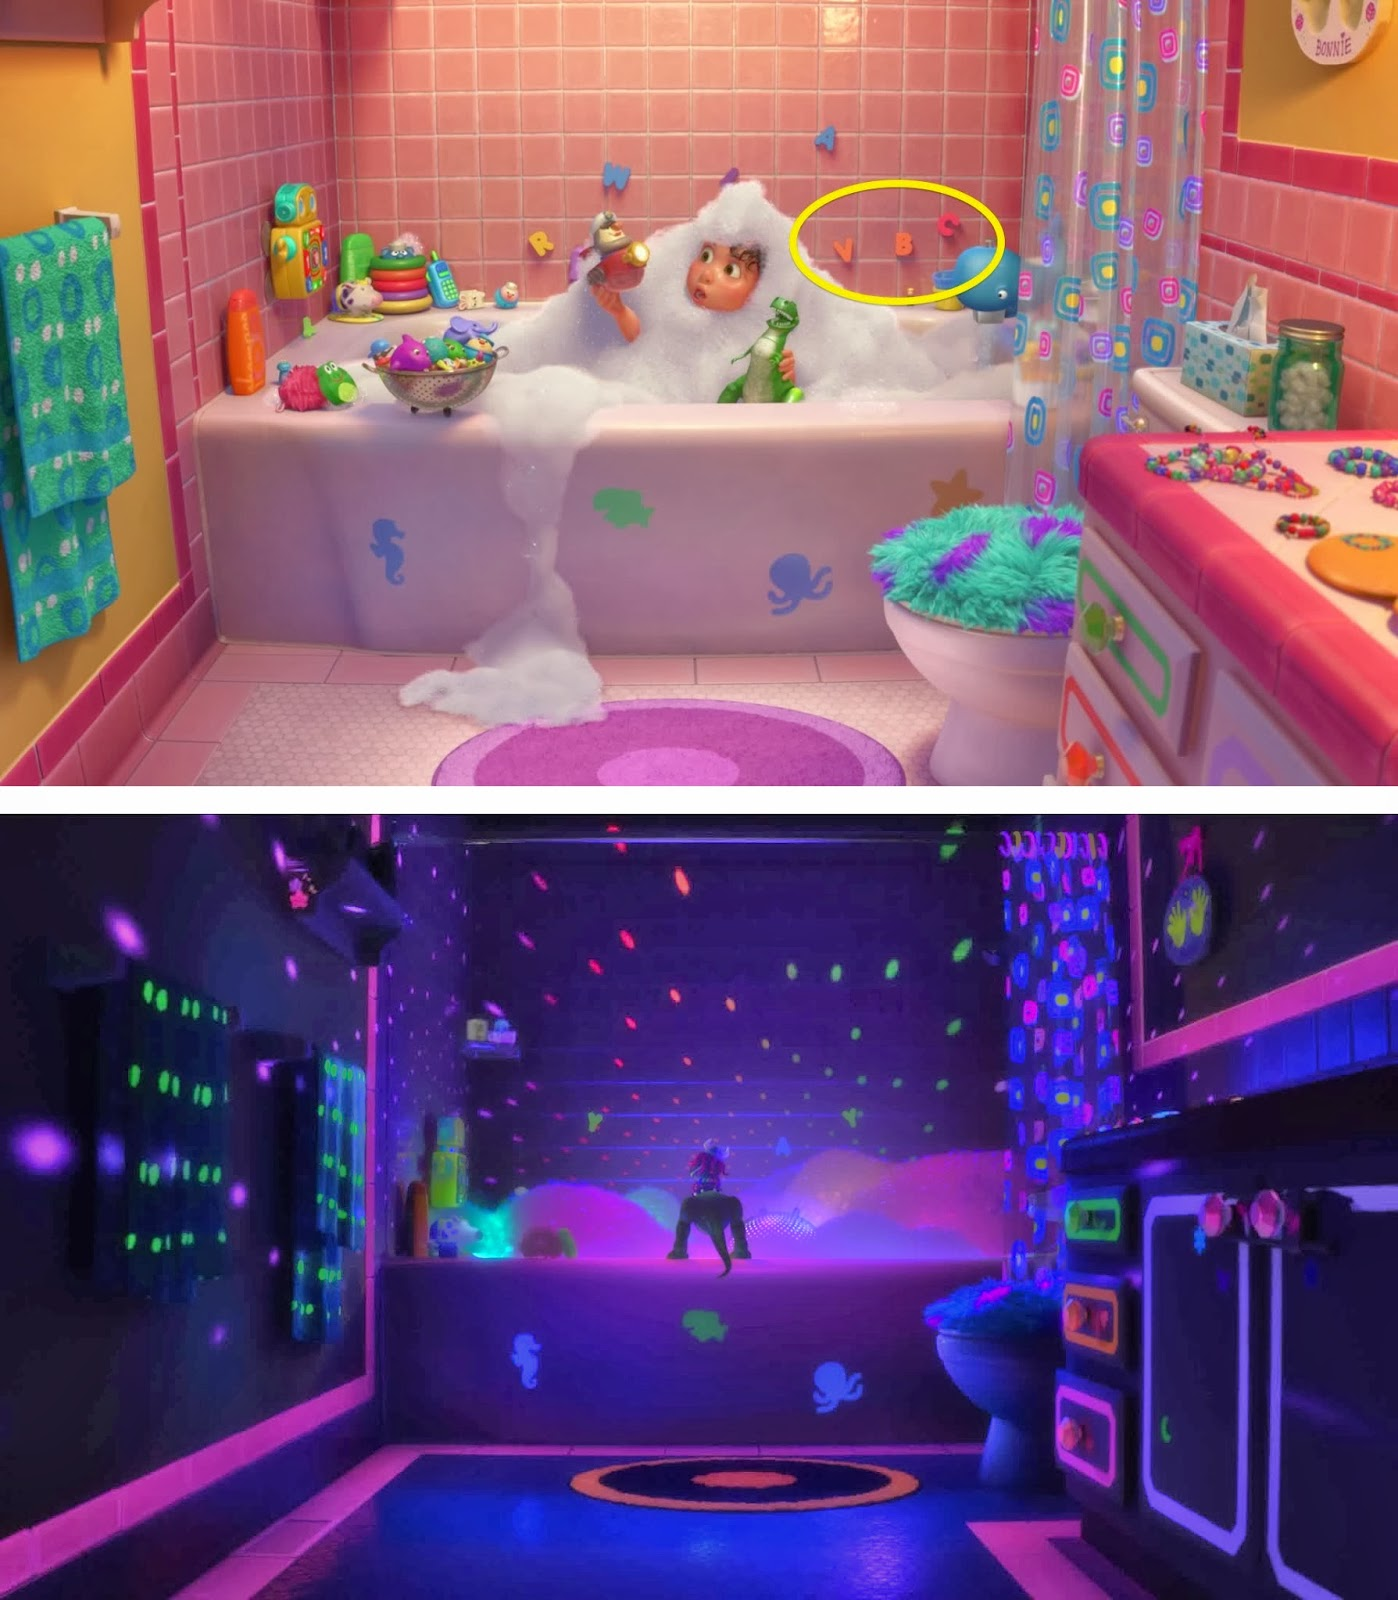 Monster bathroom